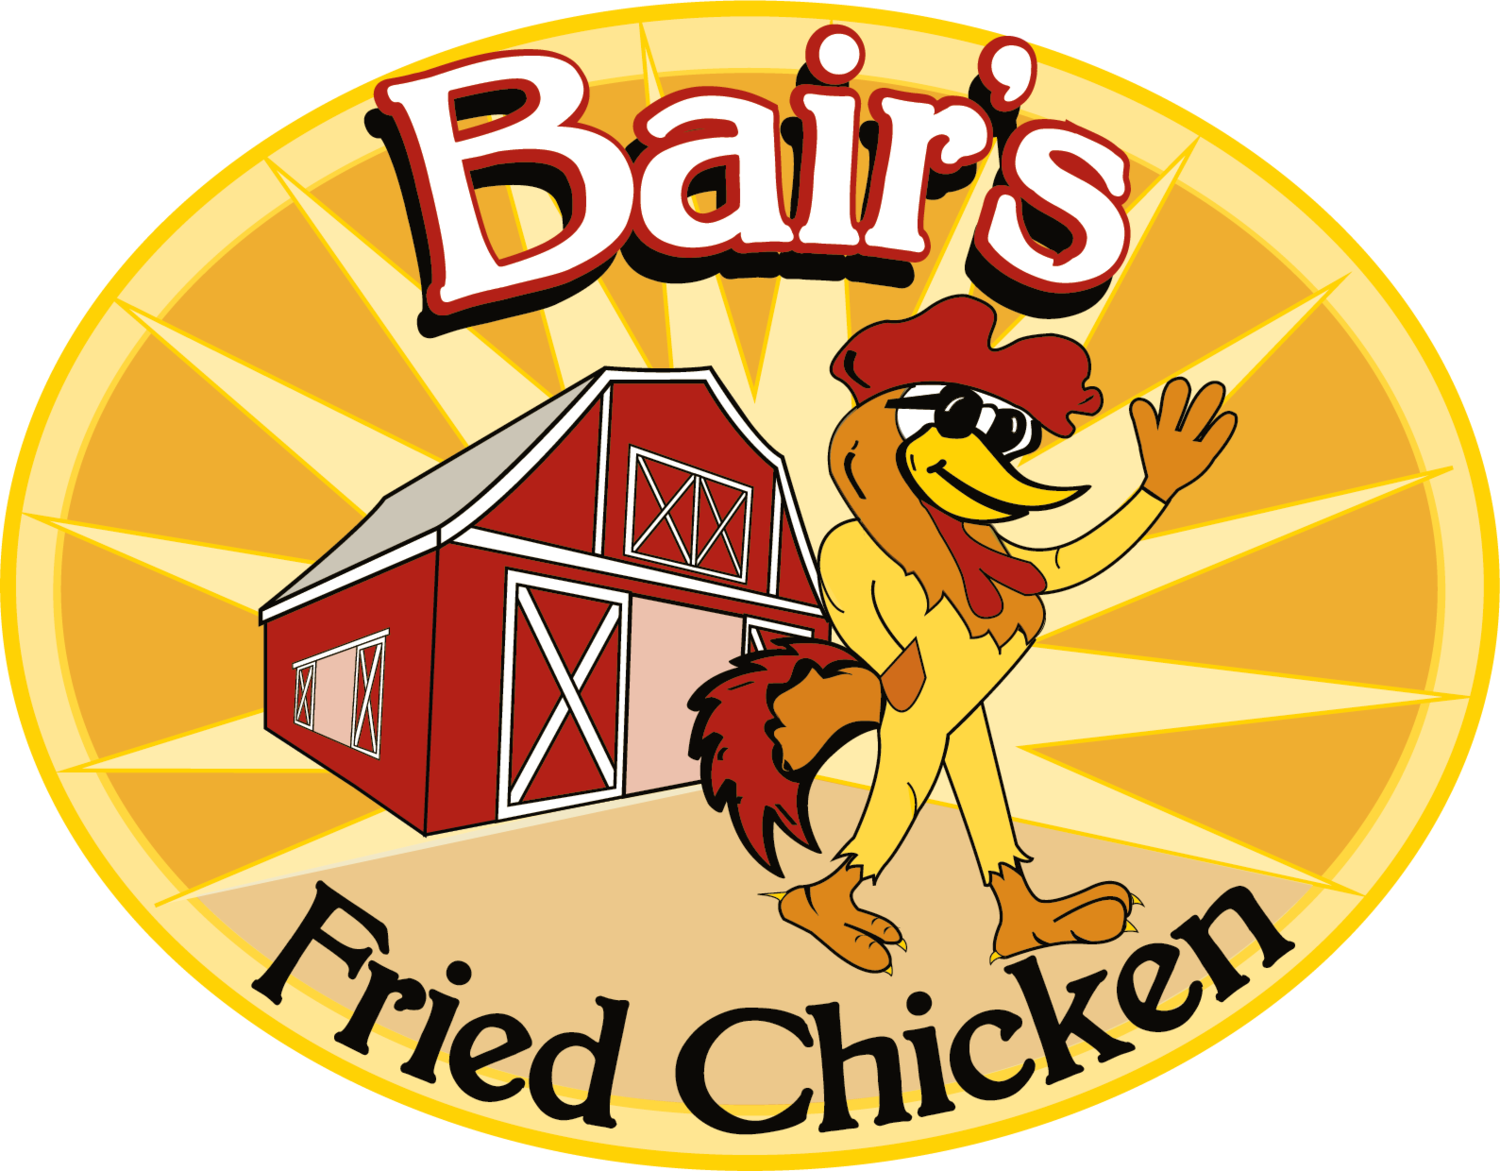 Bair's Fried Chicken - York PA